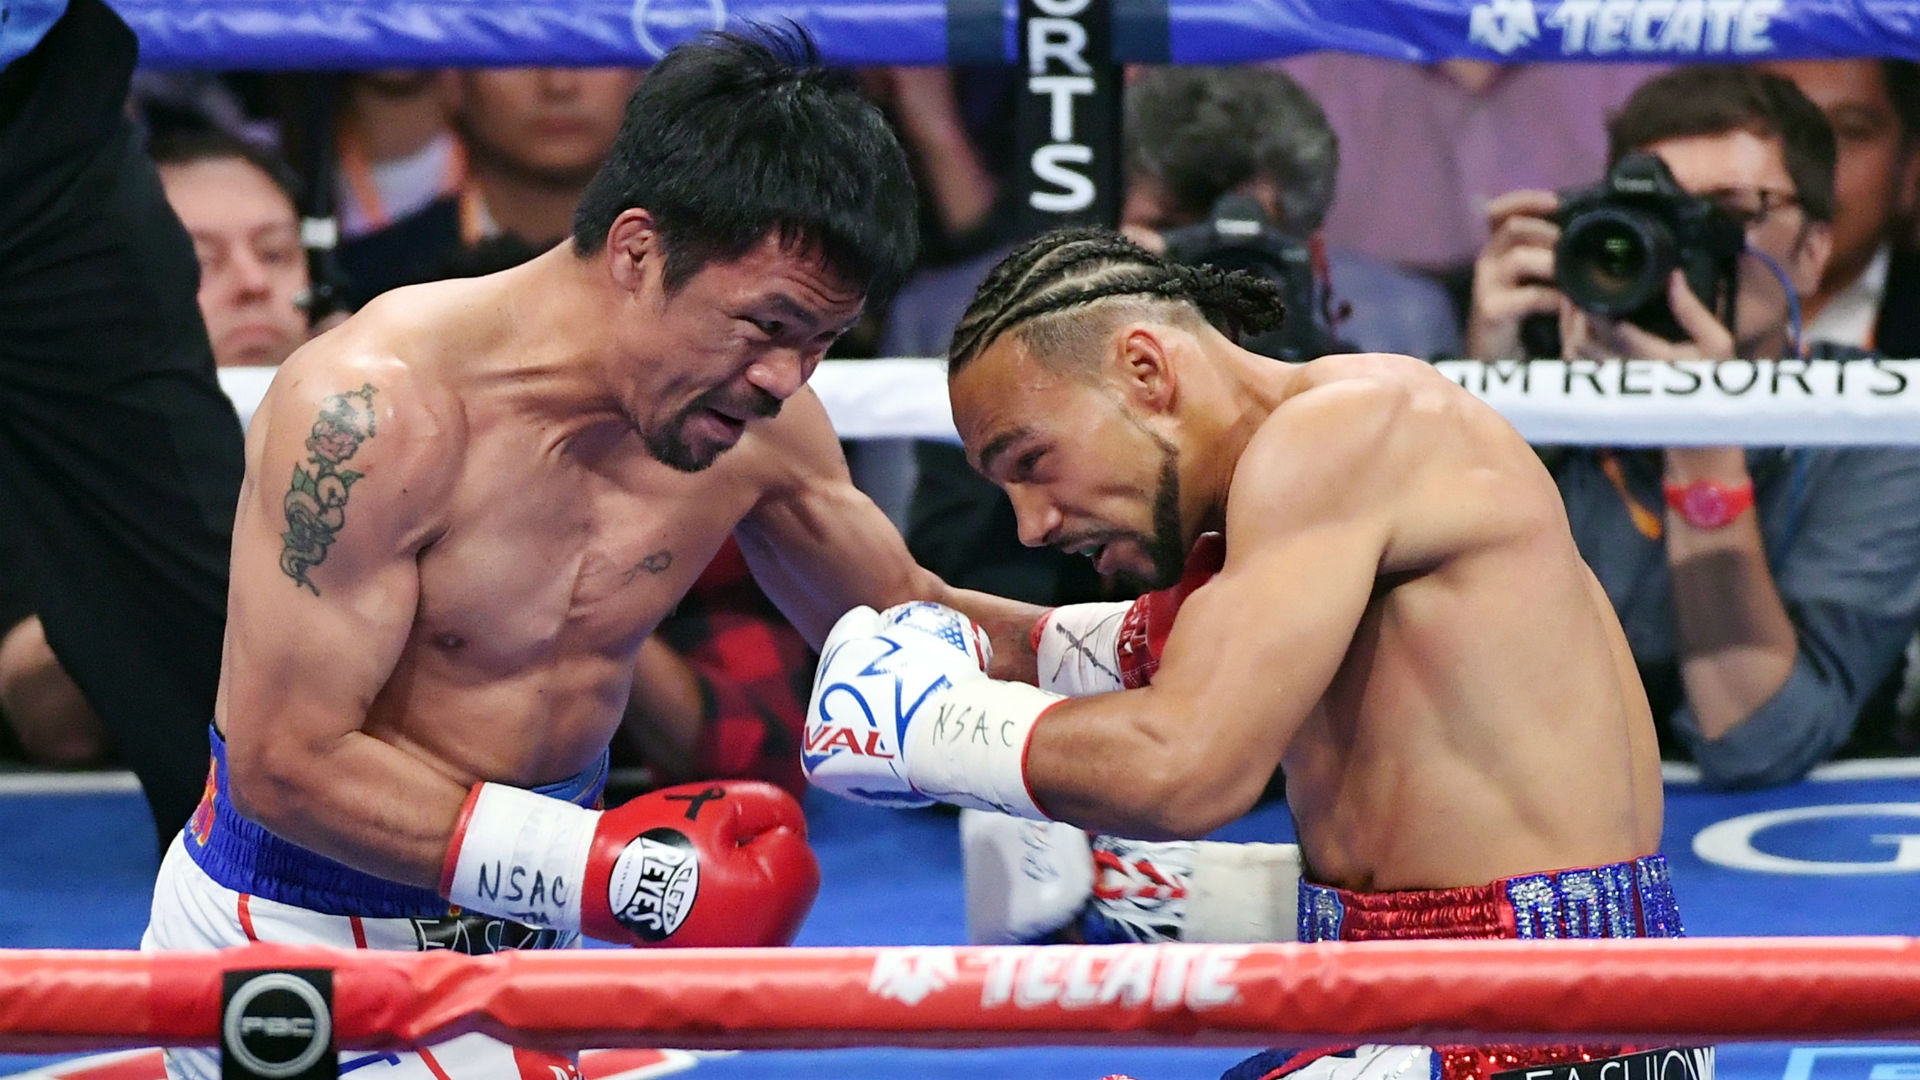 Pacquiao vs  Thurman results: Manny Pacquiao edges Keith